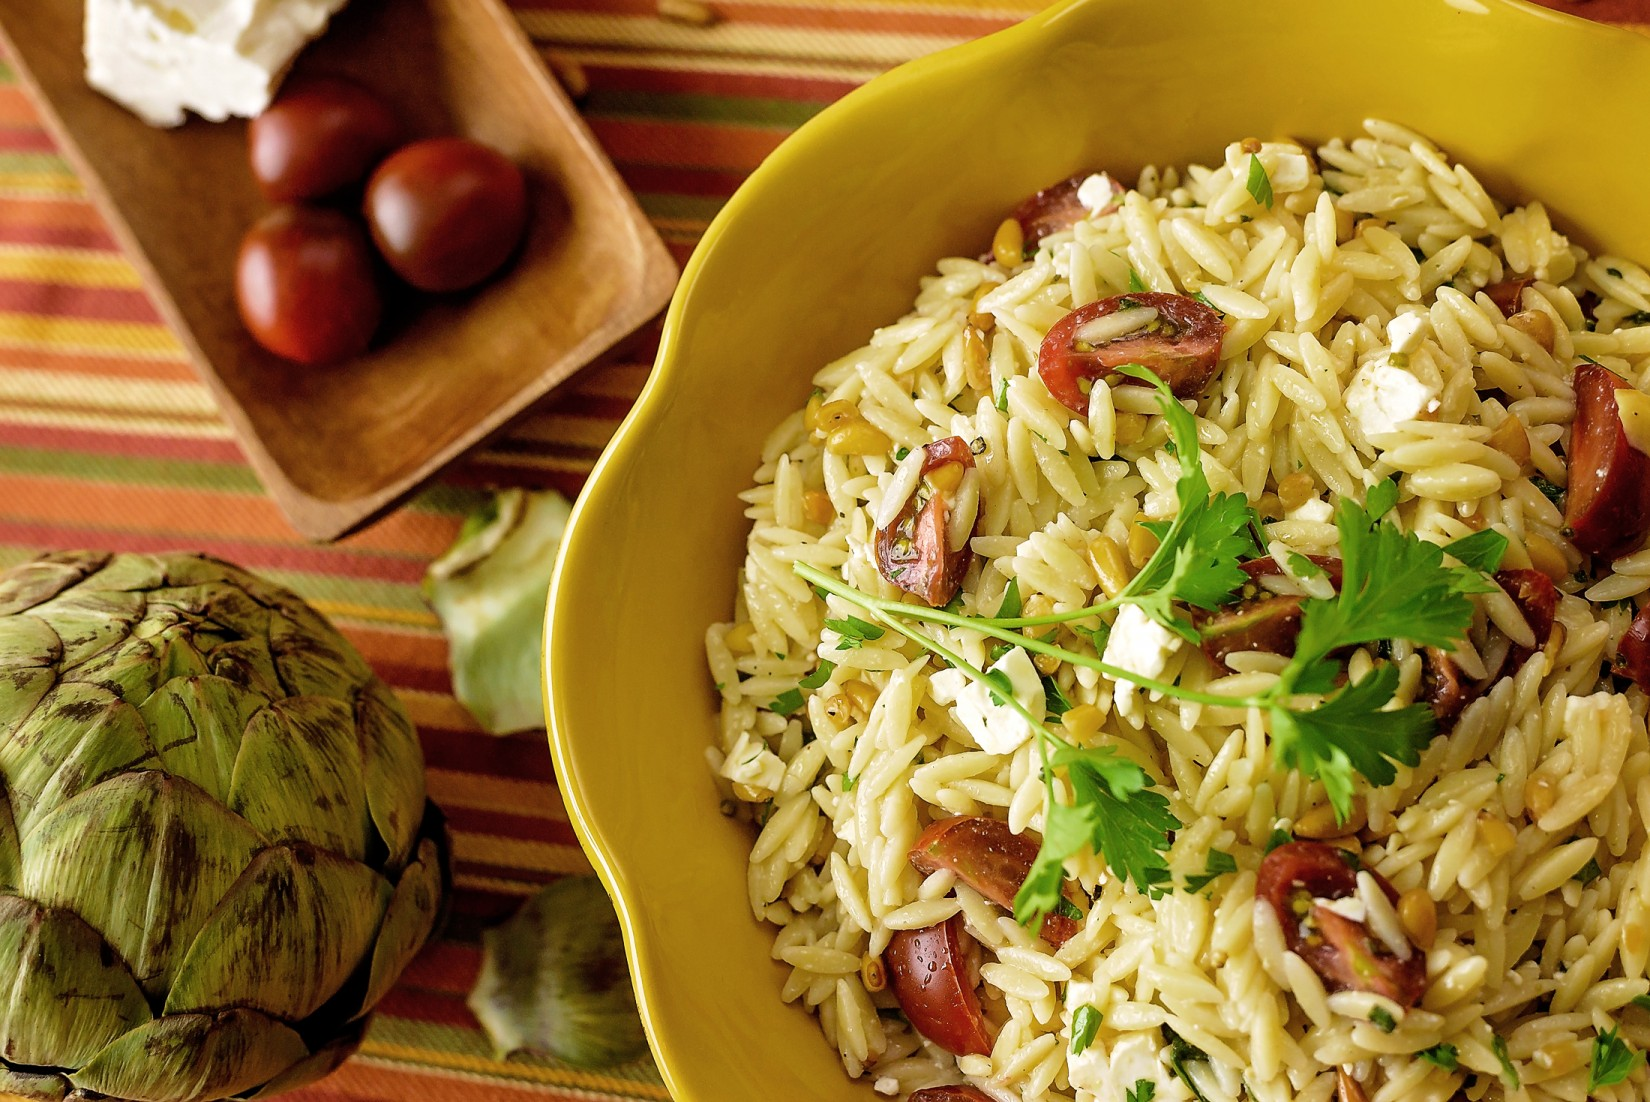 Mediterranean Orzo with Artichoke and Pine Nuts